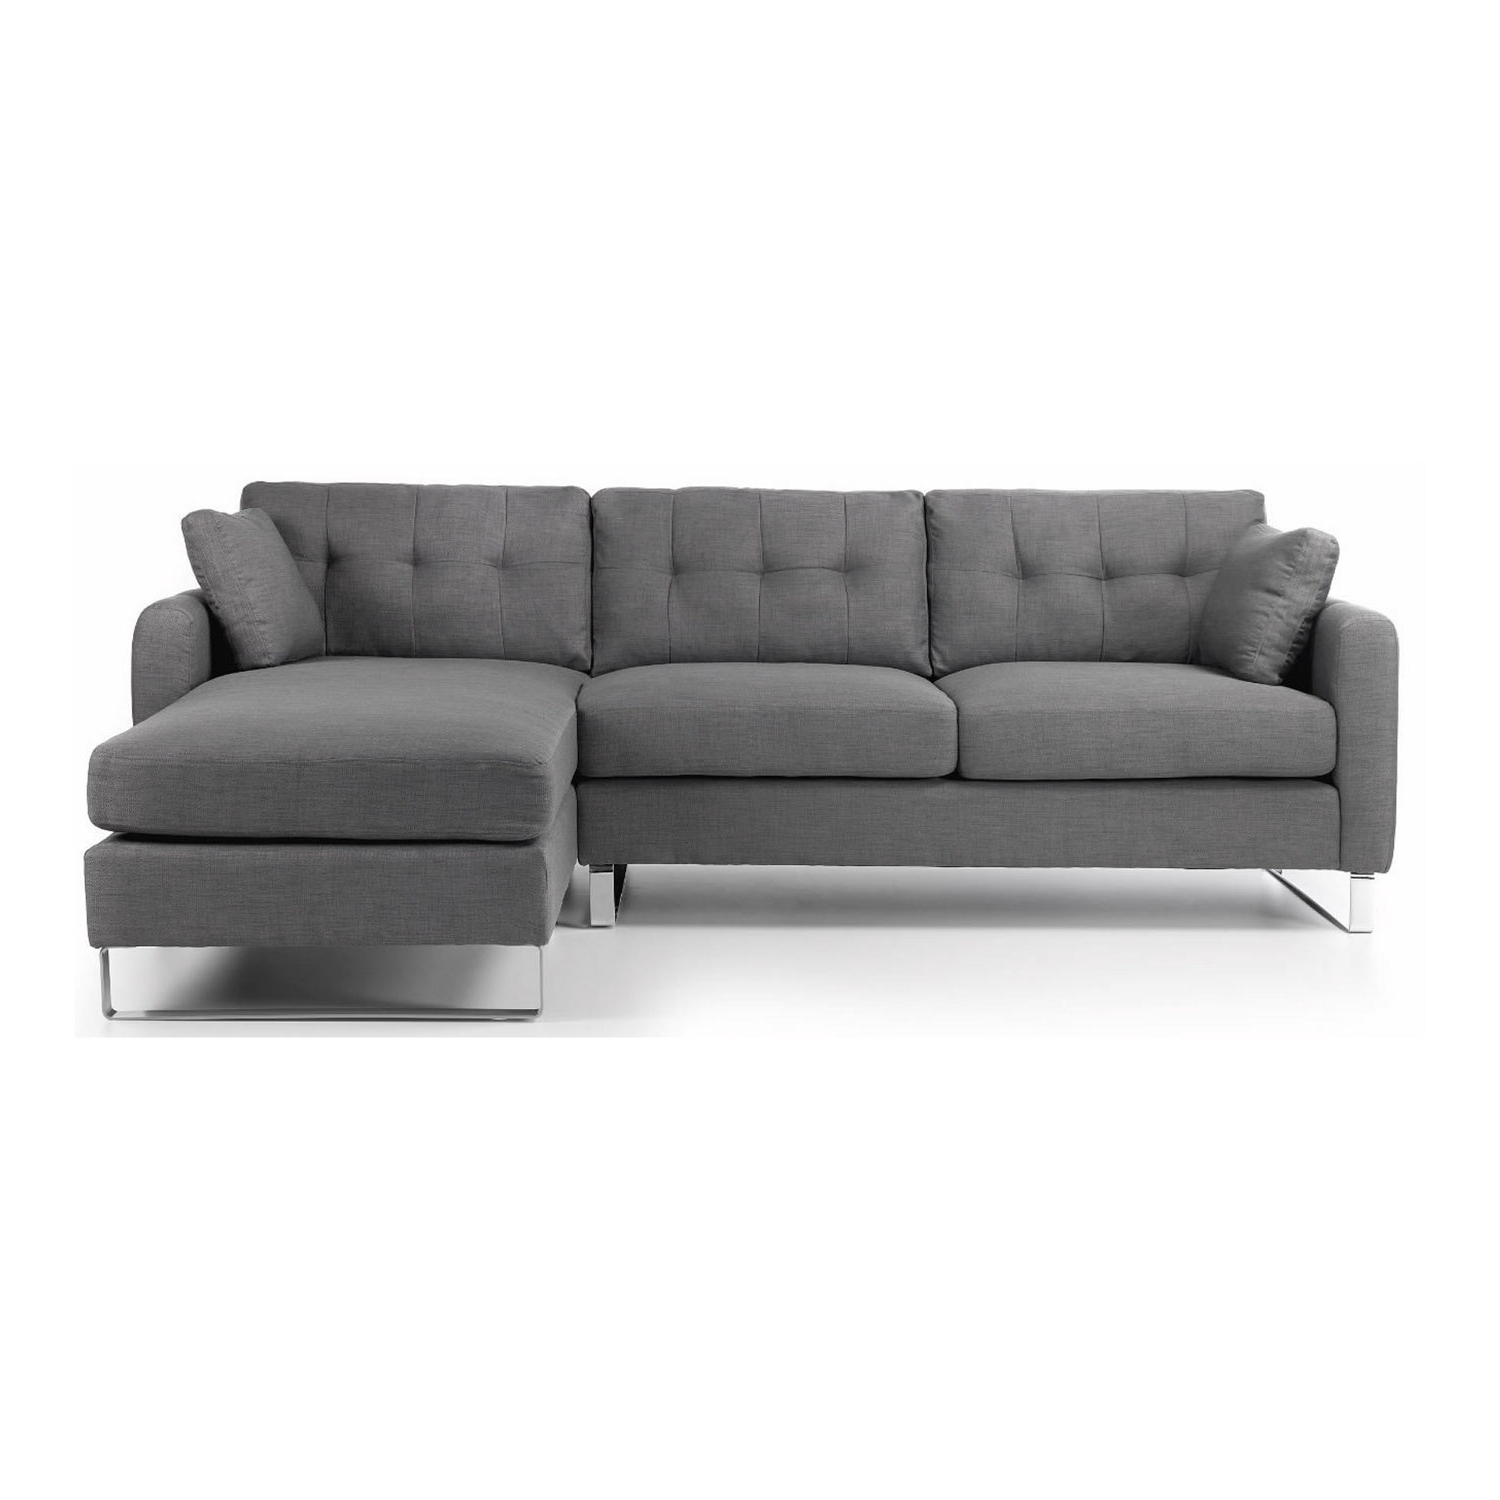 Most Current Chaise Sofa Beds Pertaining To Ares Corner Chaise Sofa – Next Day Delivery Ares Corner Chaise Sofa (View 11 of 15)